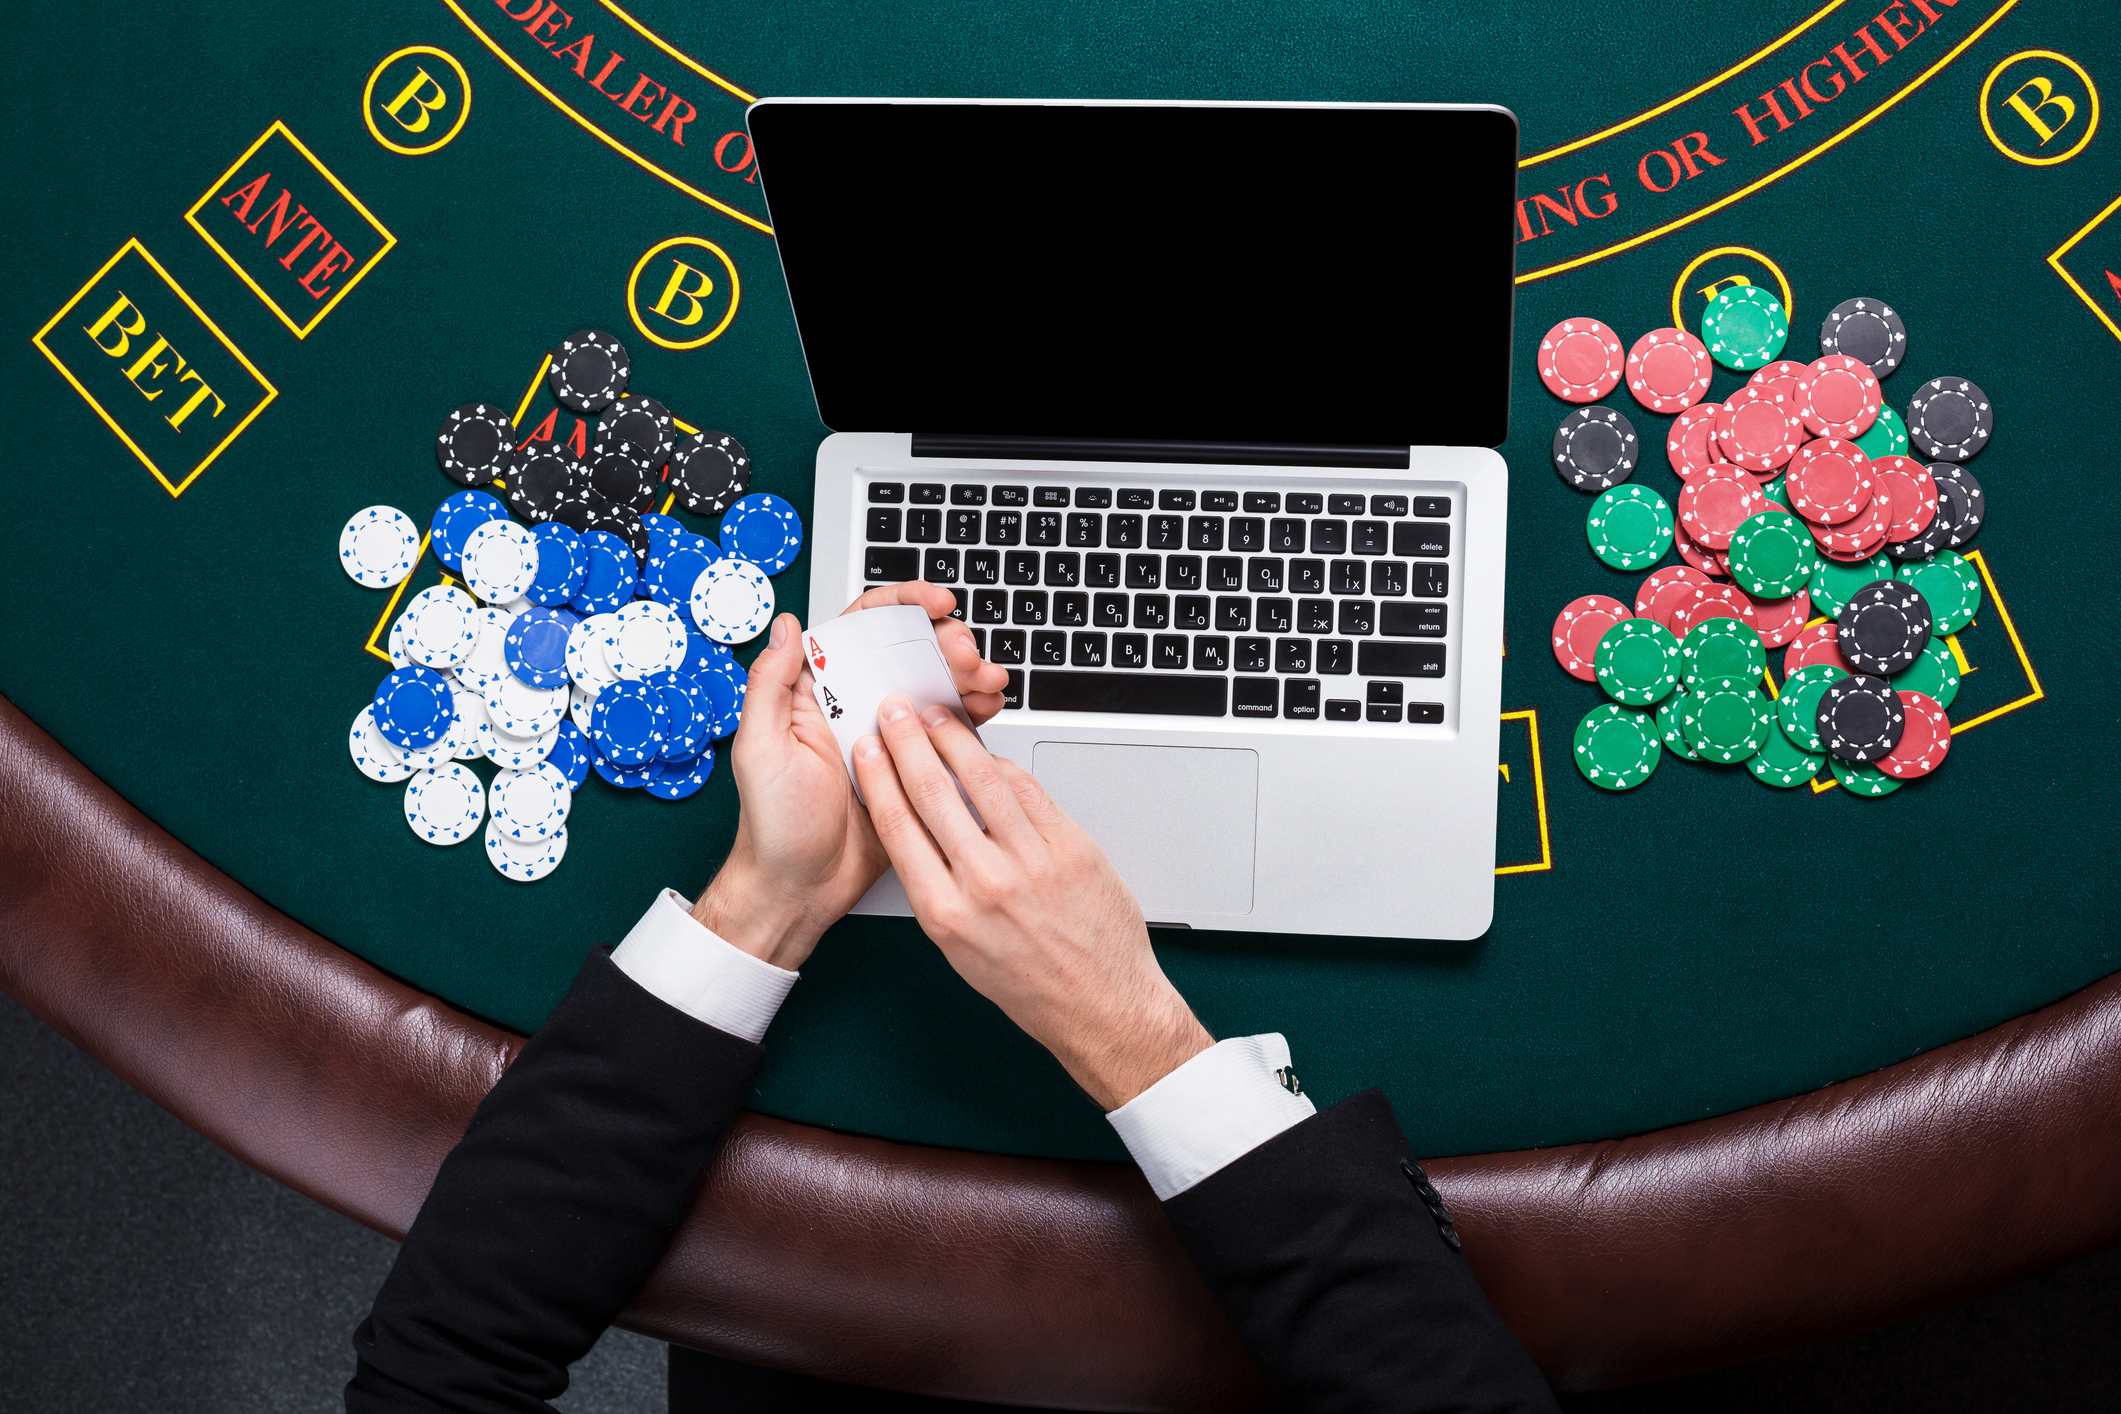 casino-online-gambling-technology-and-people-concept-close-upjpg